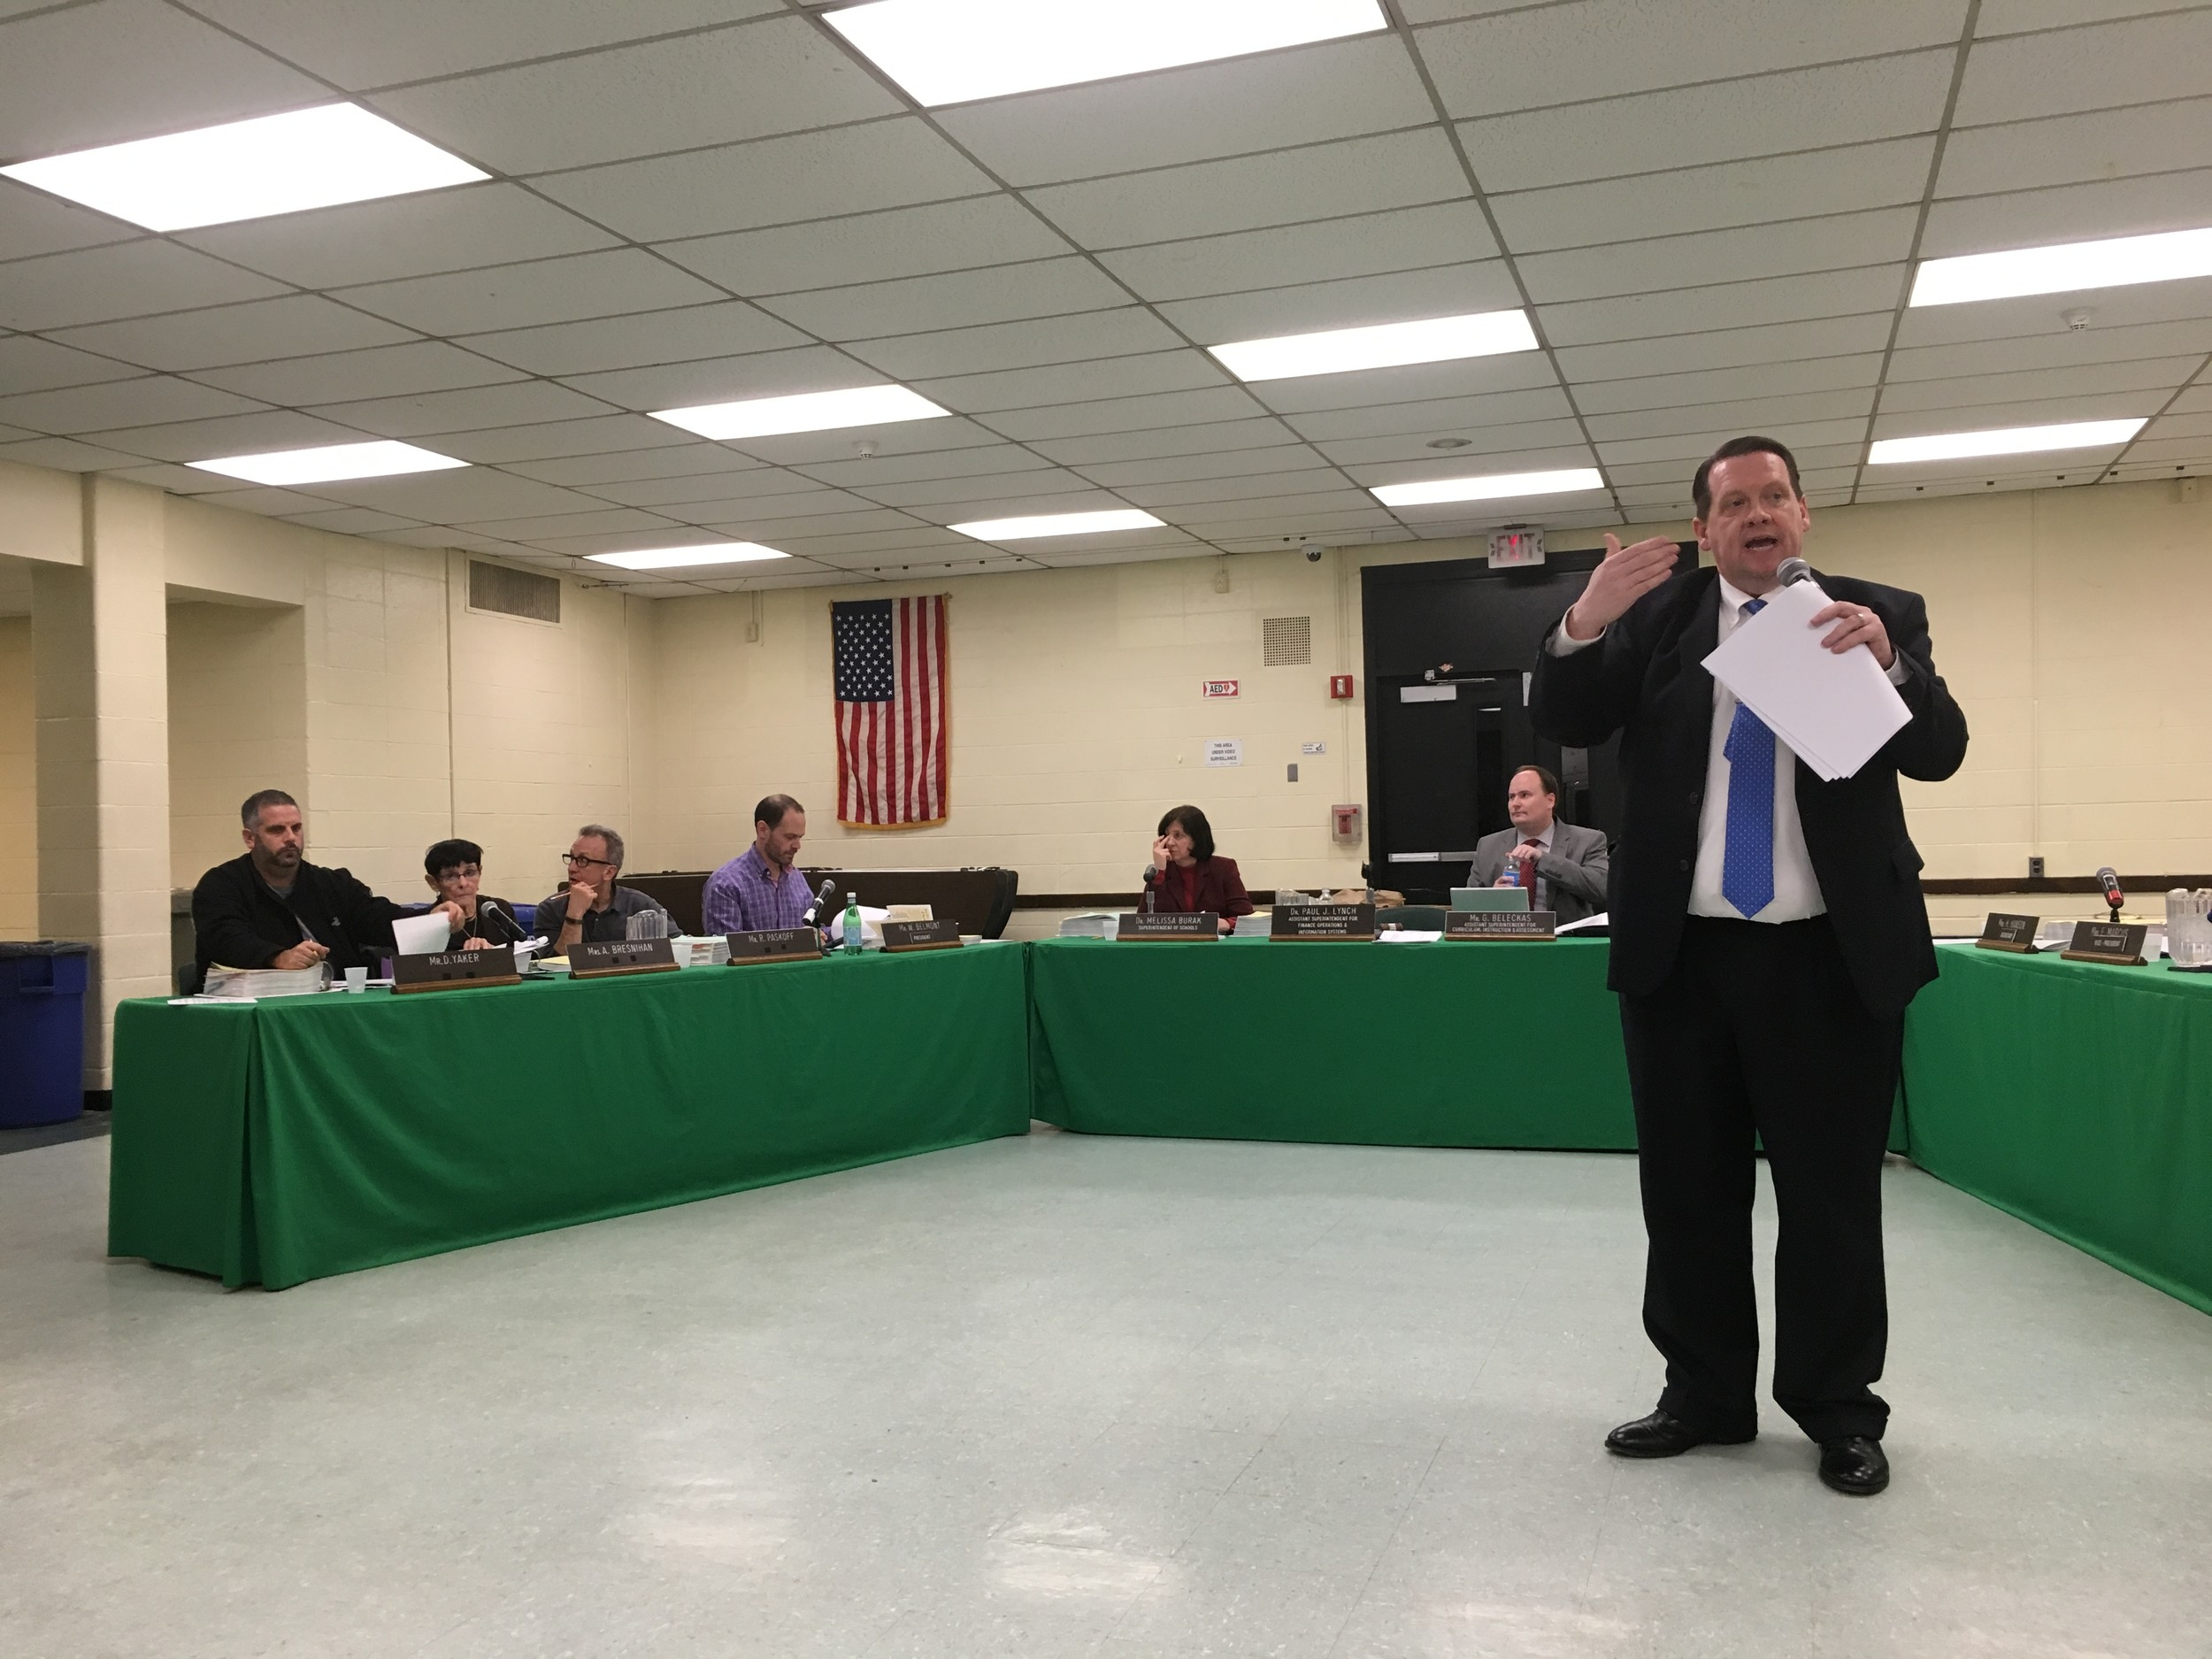 Dr. Paul Lynch, the superintendent for finance at Lynbrook Public Schools, presented a proposed balanced budget on Feb. 15 that includes plans to expand the district's tablet program.